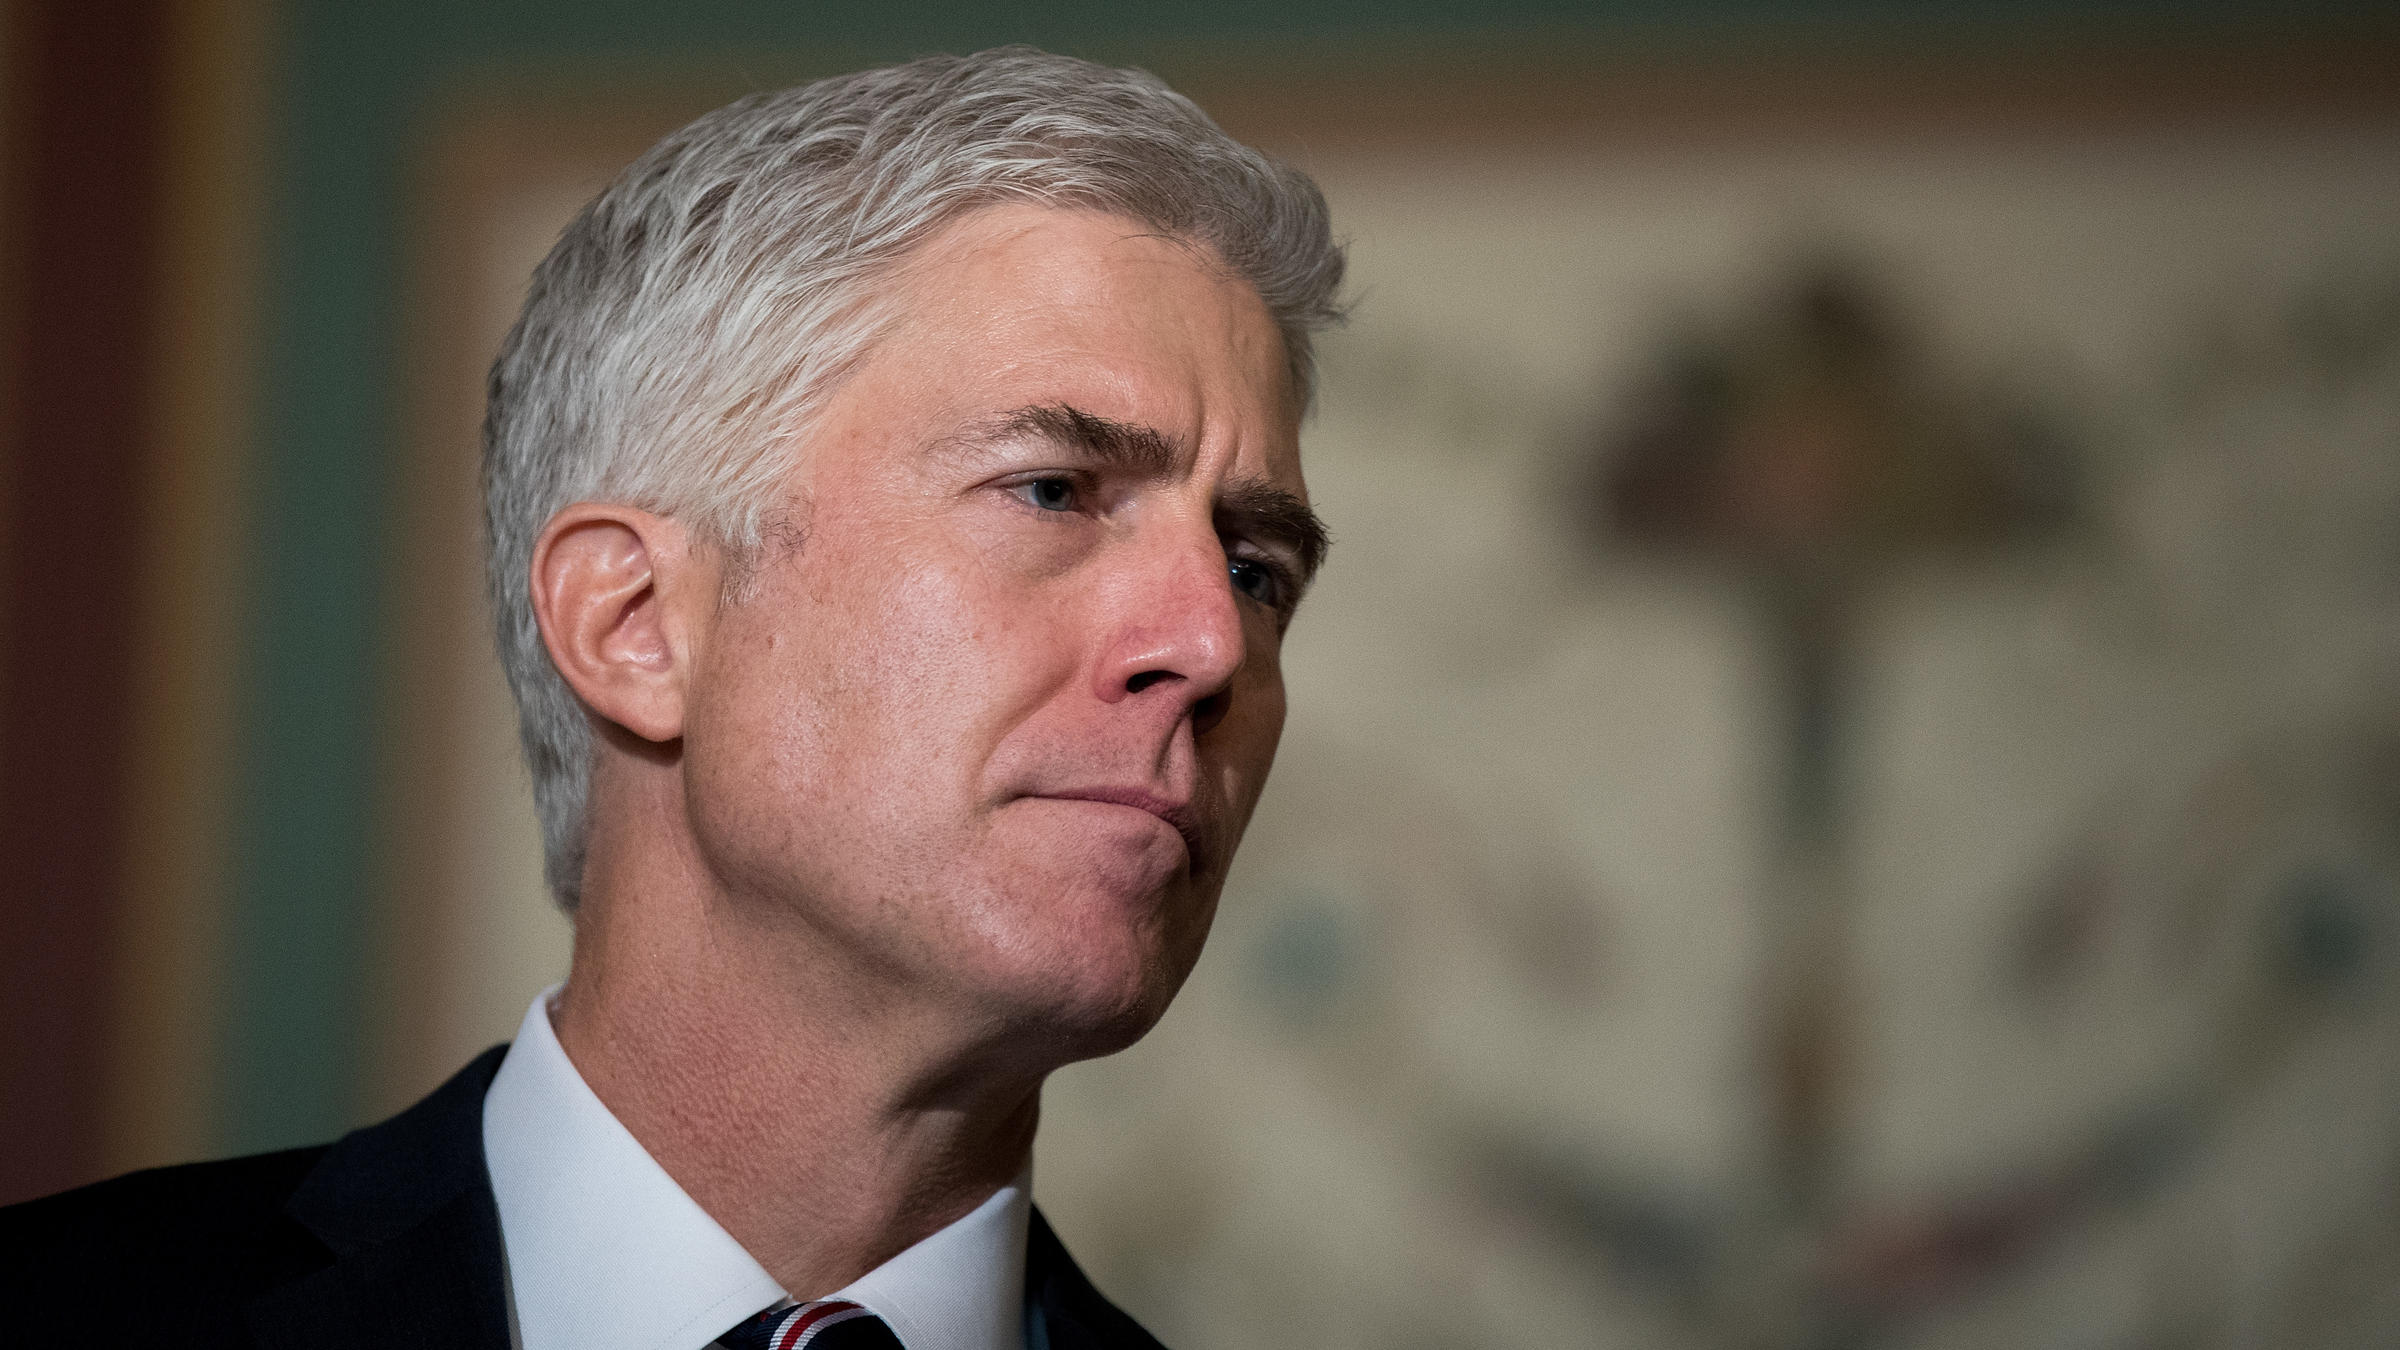 Gorsuch Confirmation Fight To Begin, But No Energetic Opposition From Dems